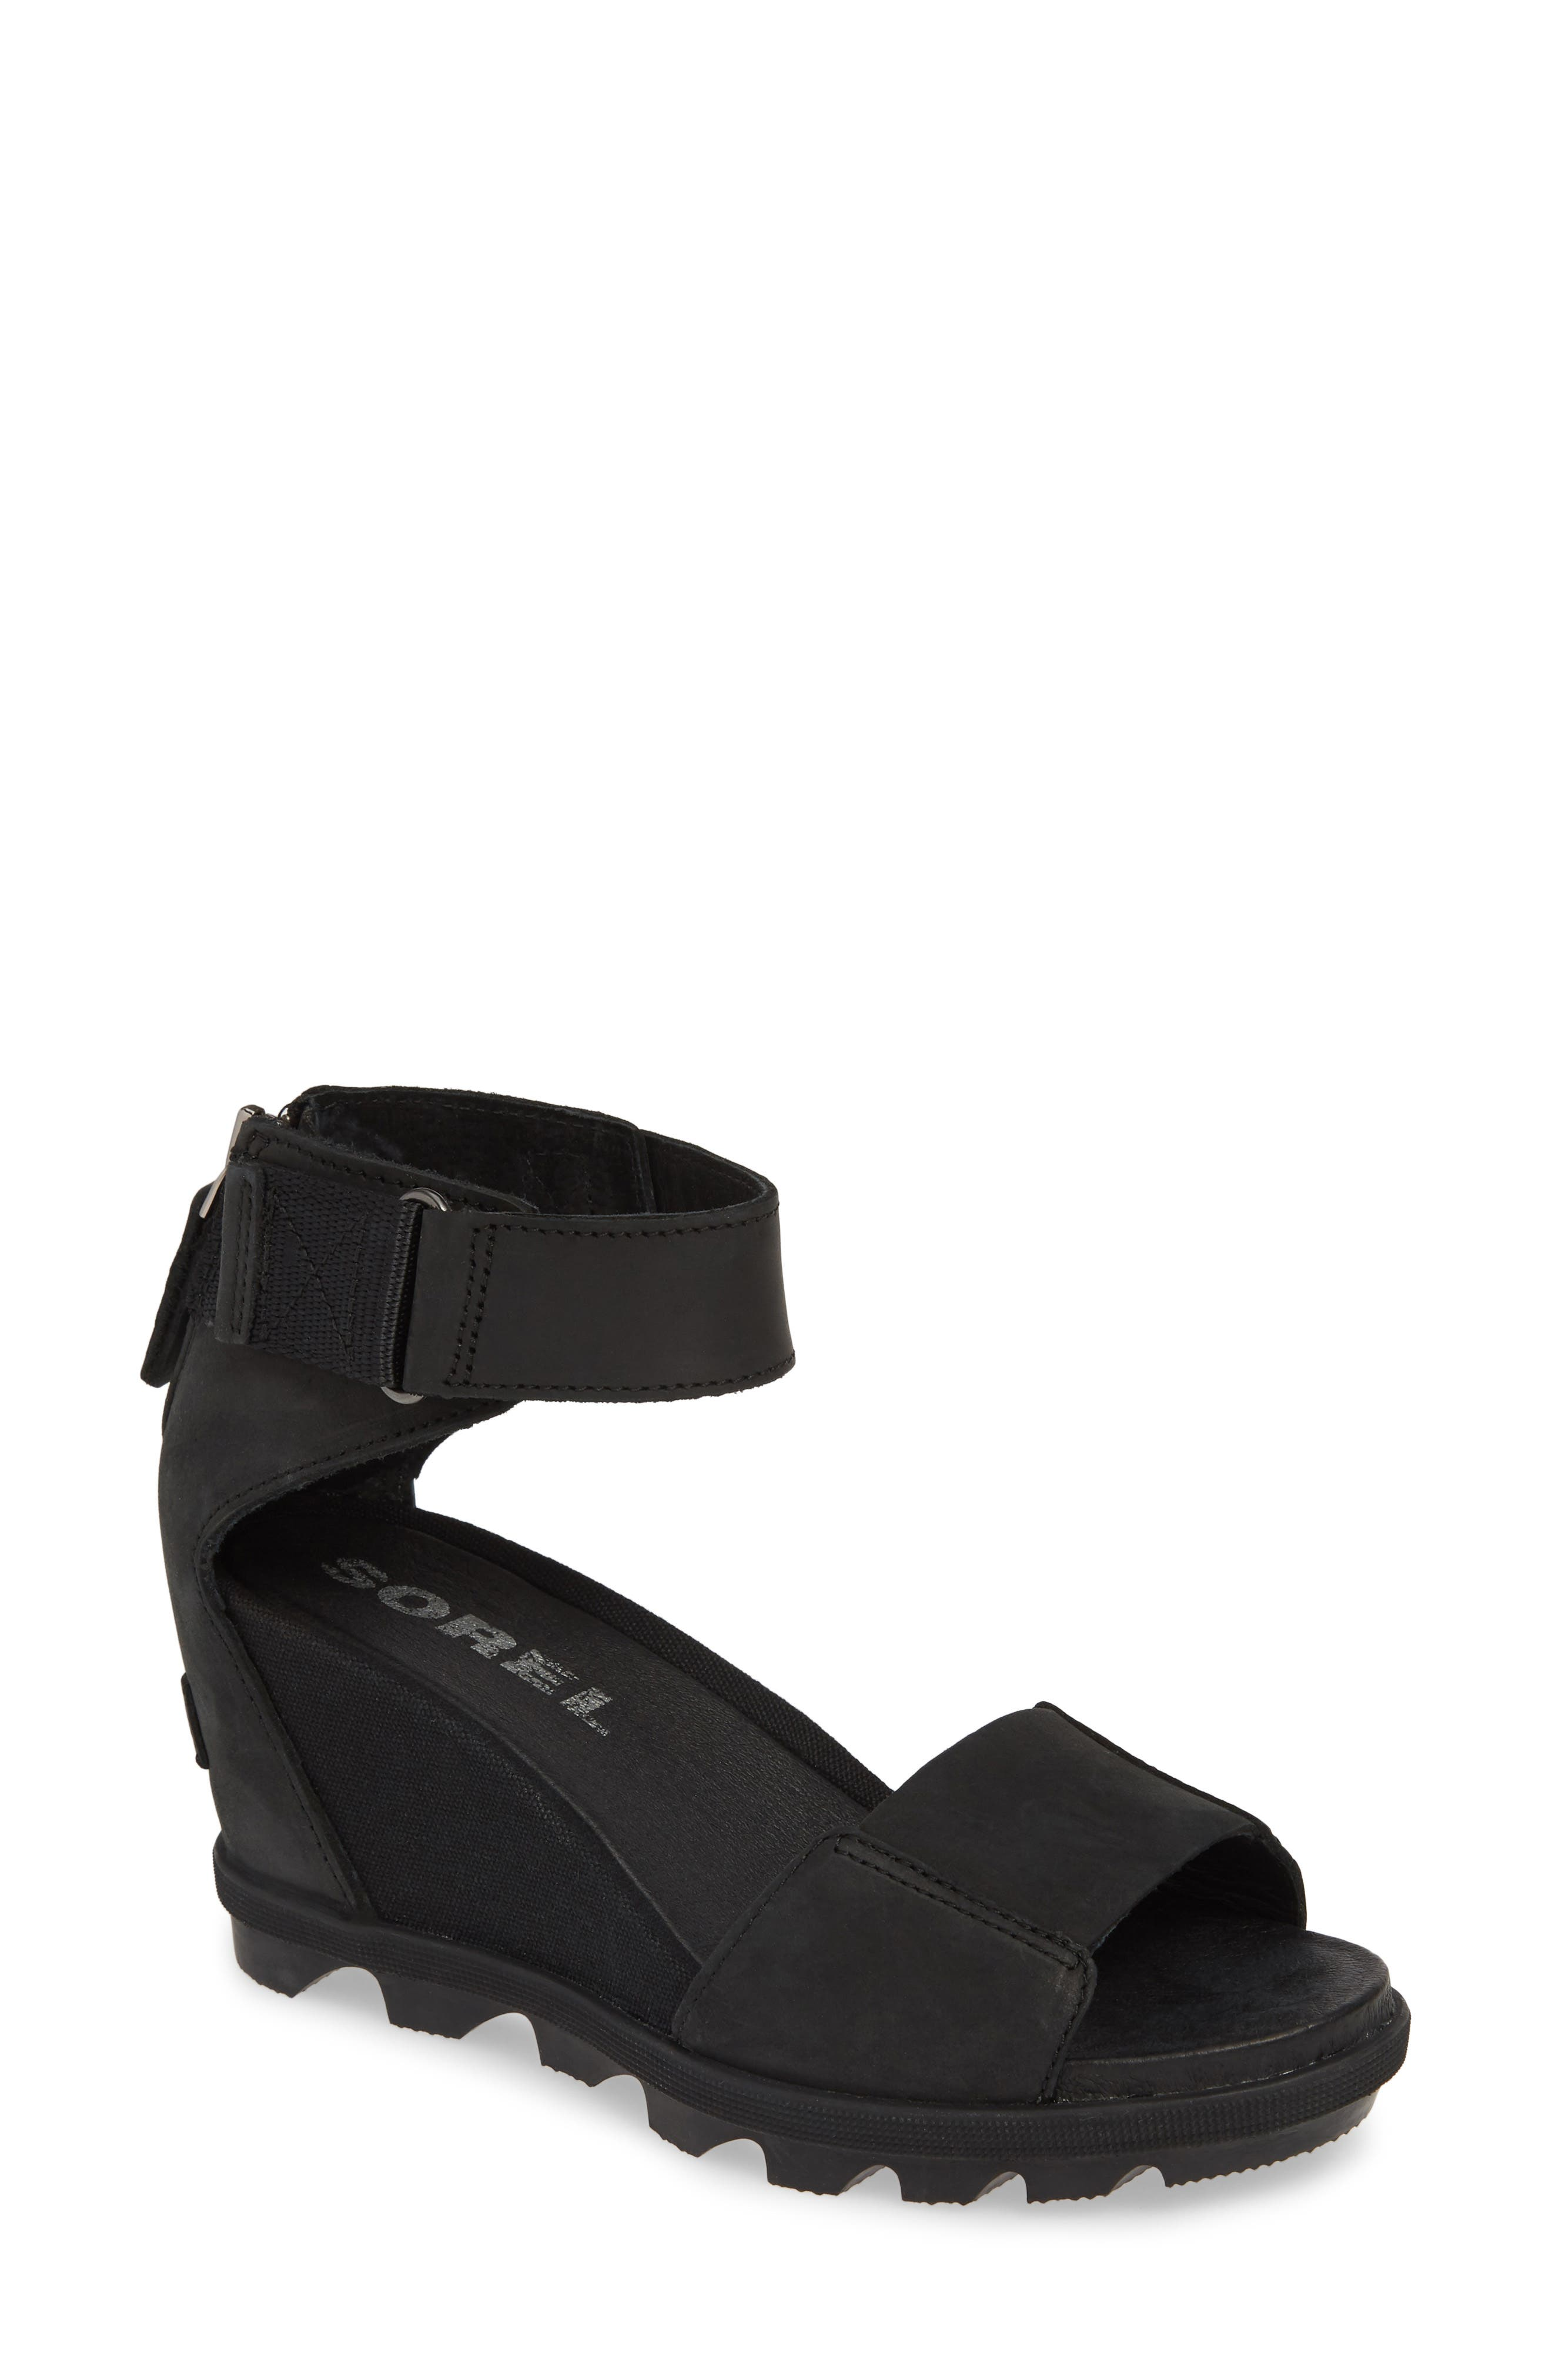 Sorel Joanie Ii Ankle Strap Wedge Sandal- Black